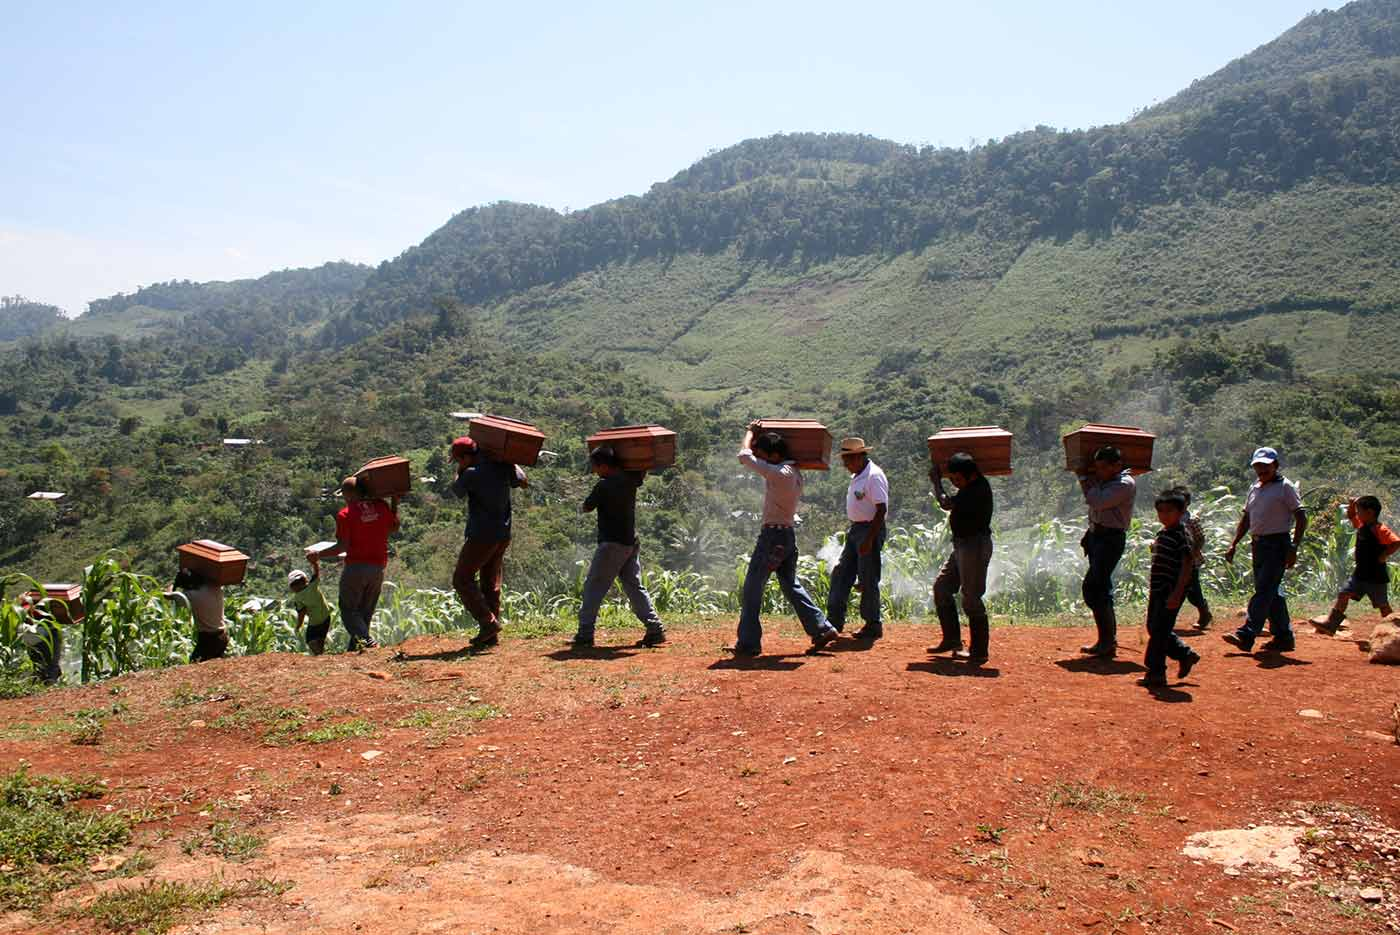 Queqchí people carrying their loved one's remains after an exhumation in Cambayal in Alta Verapaz department, Guatemala.